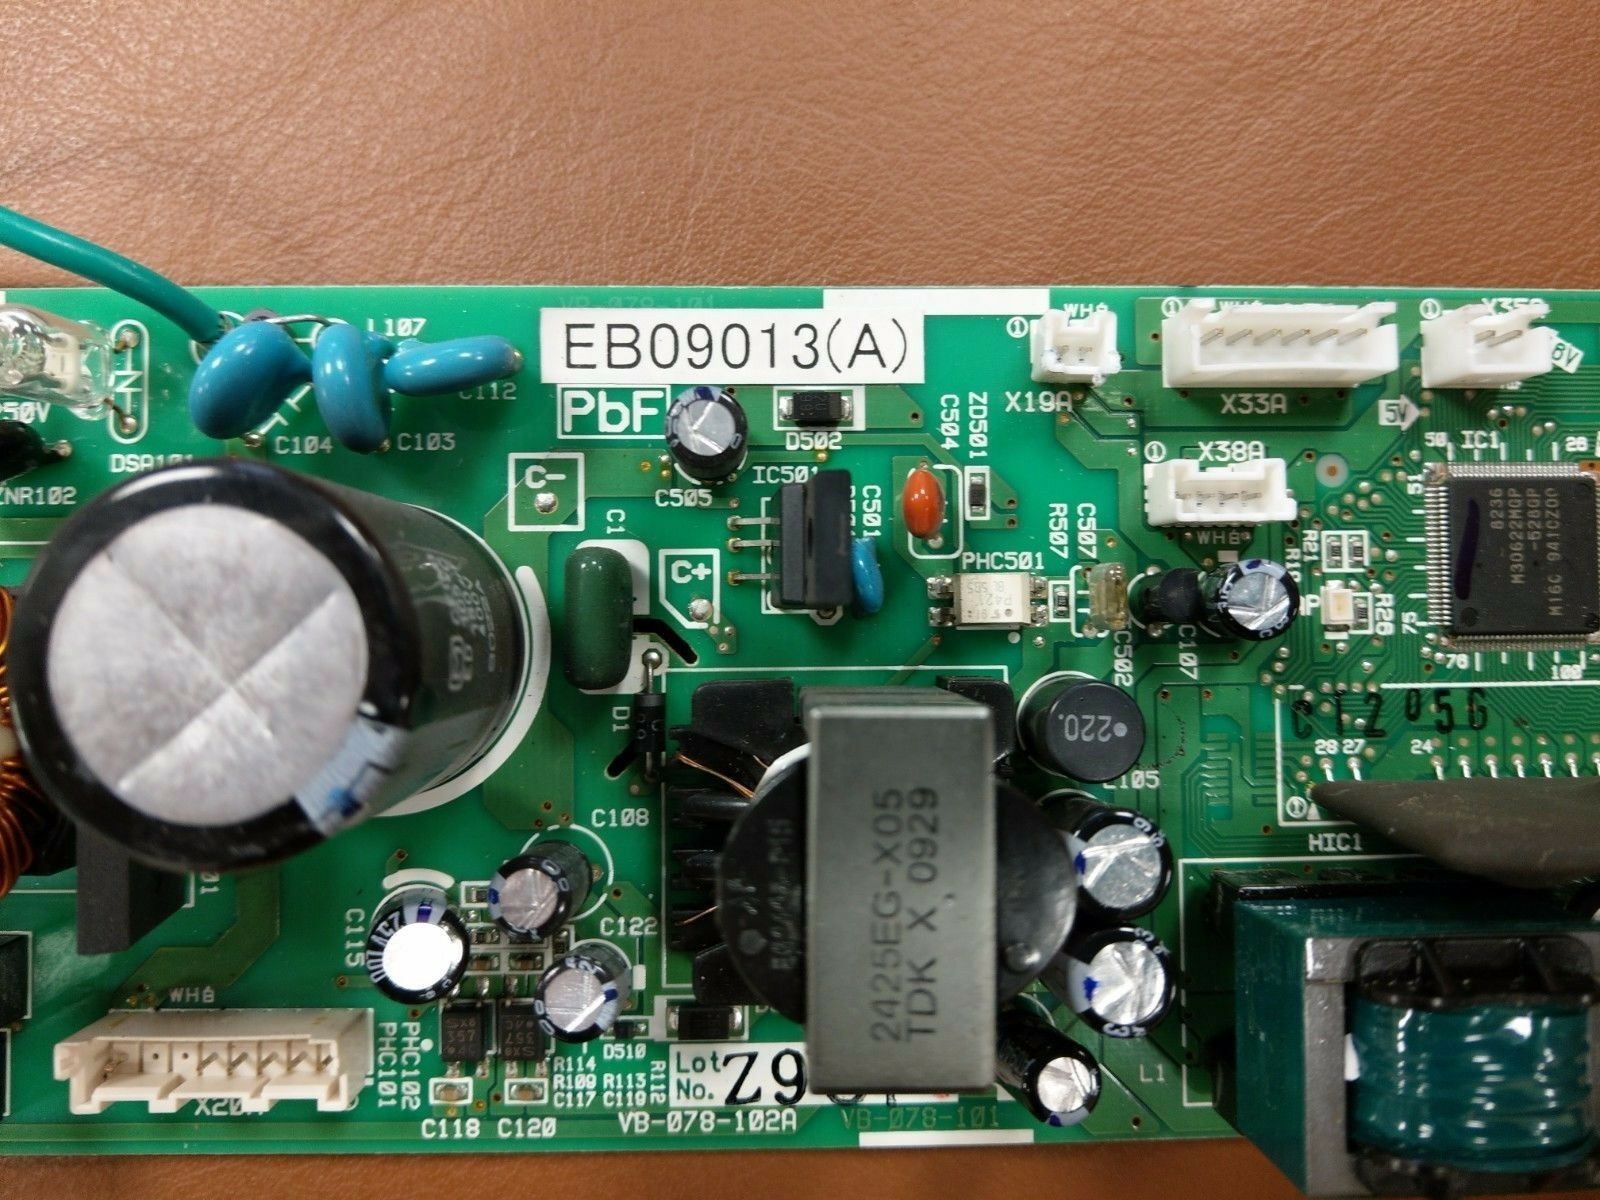 Daikin Pcb Board Eb09013 Ebay Central Air Conditioning Circuit Norton Secured Powered By Verisign